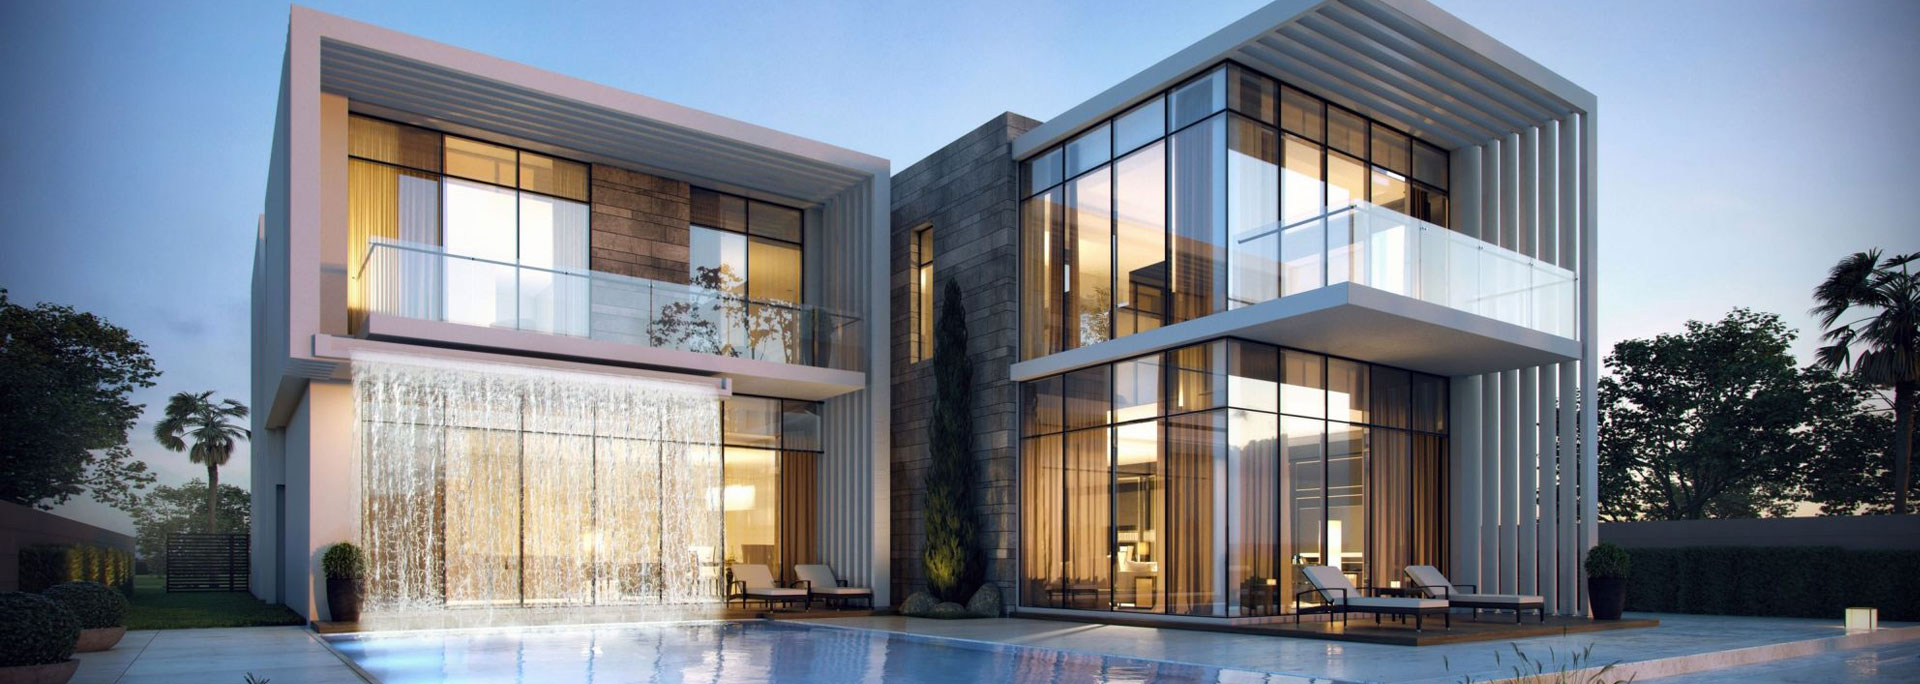 3D photorealistic architectural visualization of a two-story stucco and brick contemporary house with glass curtain walls, and a custom pool with second floor waterfall